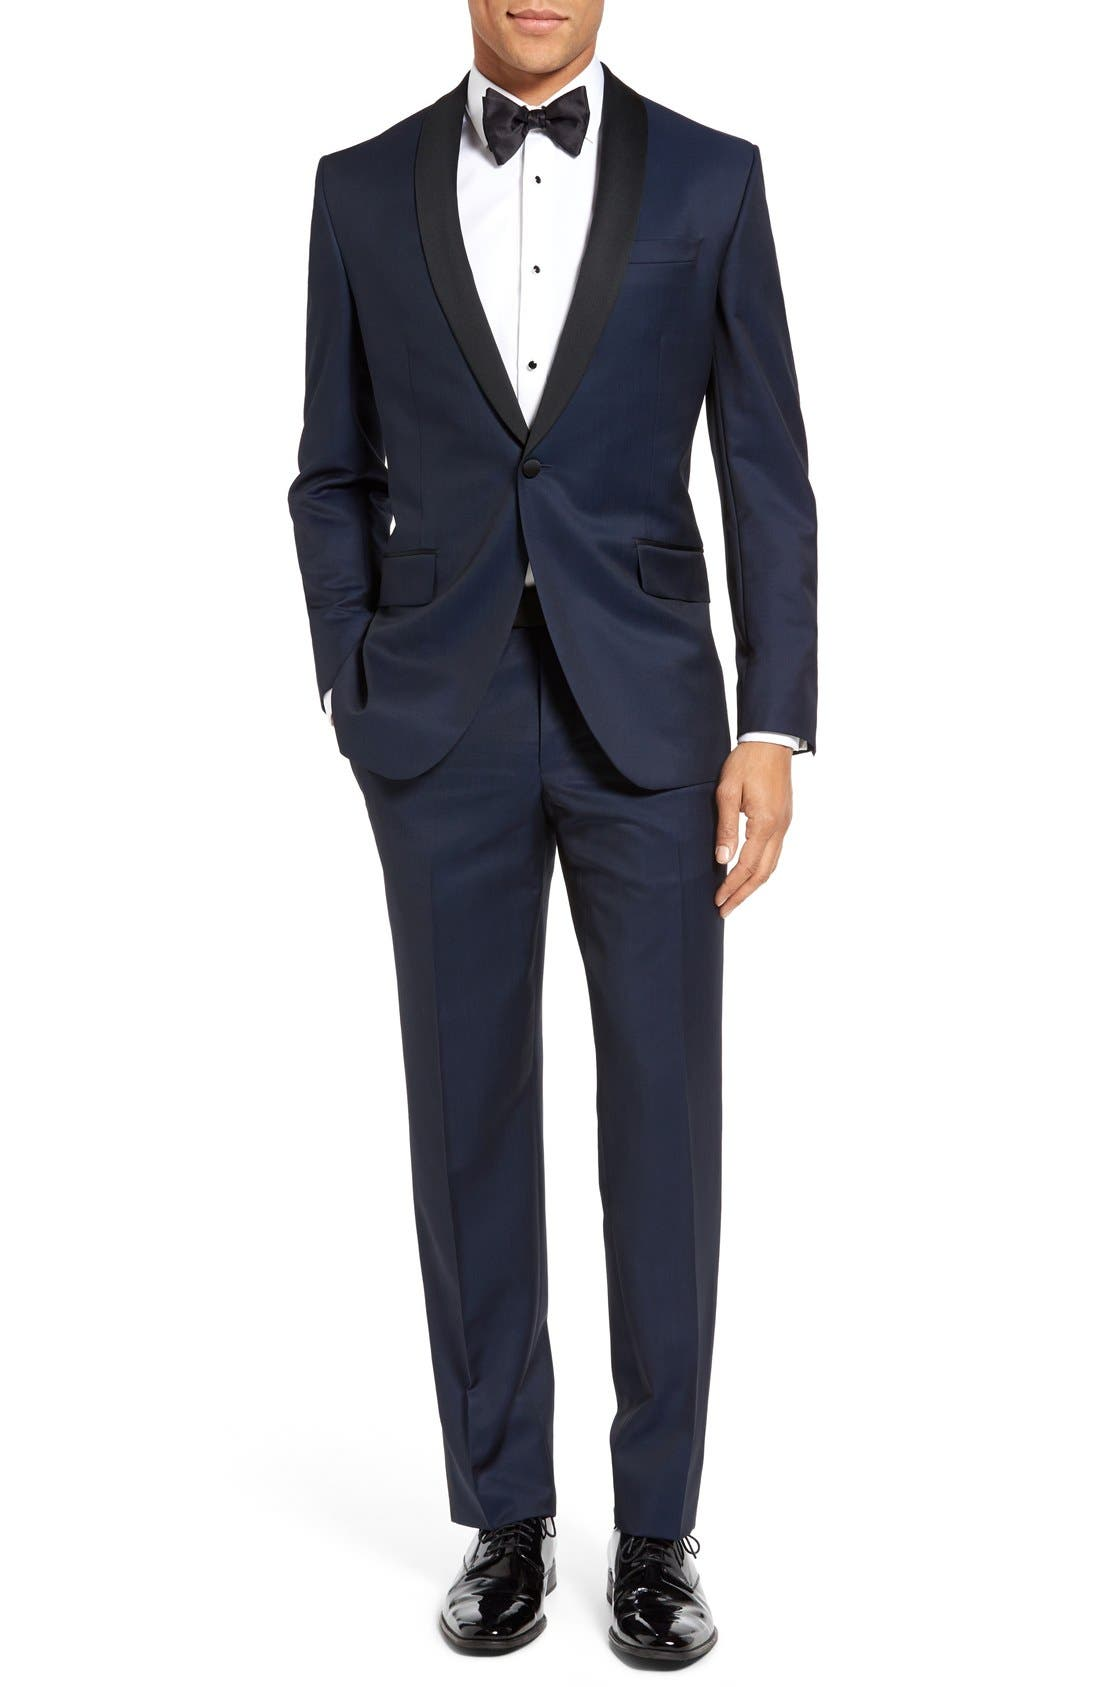 'Josh' Trim Fit Navy Shawl Lapel Tuxedo,                         Main,                         color, Navy Blue